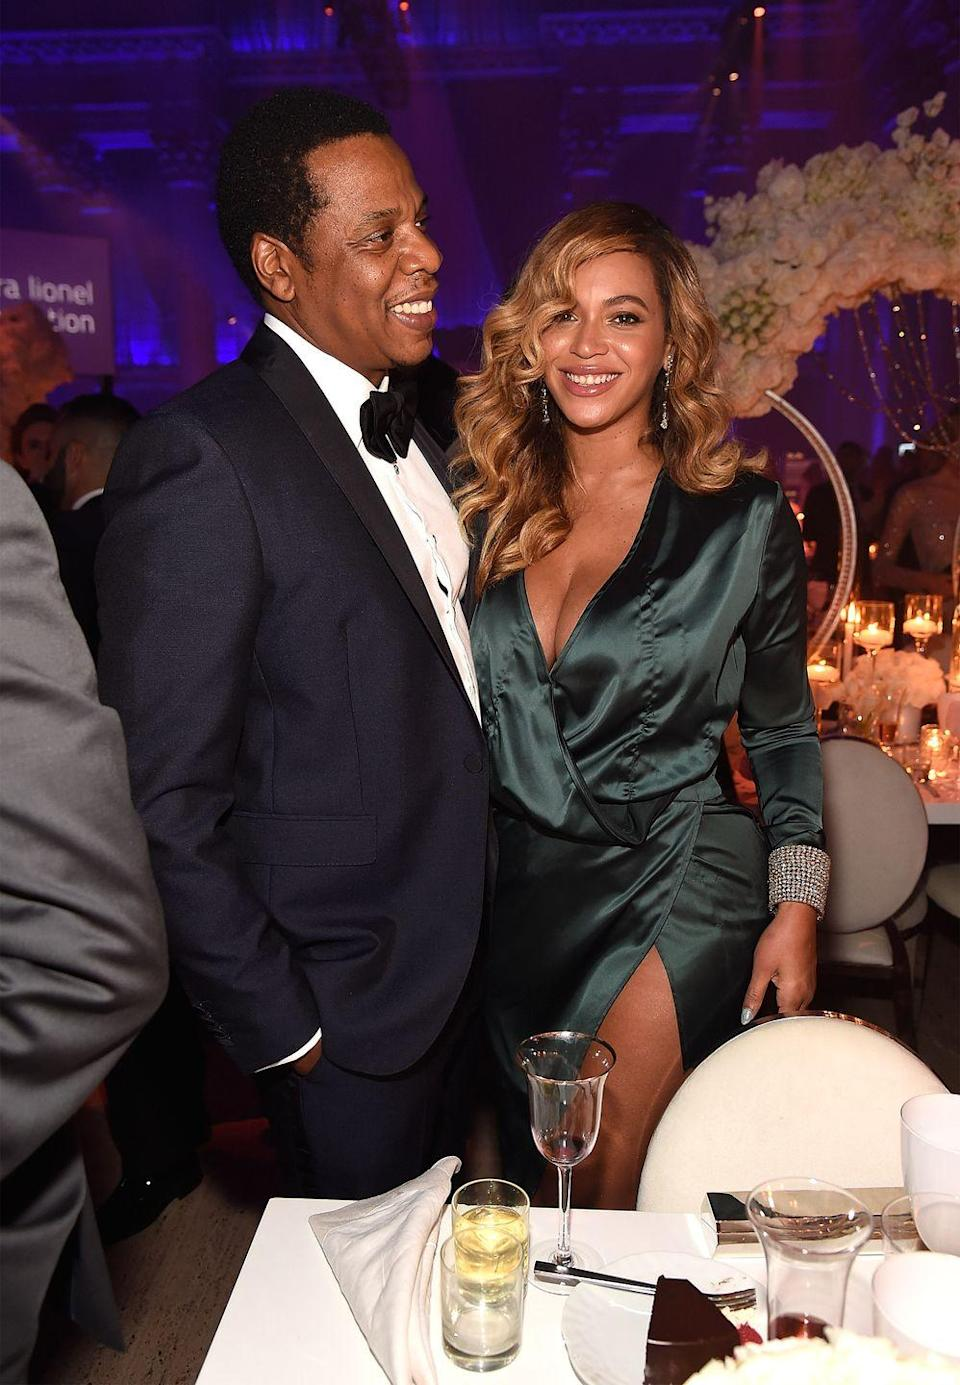 "<p>The power couple first started dating back in 2001, when Jay-Z was 32 years old and Beyoncé was only 20. They later tied the knot in a super <a href=""http://people.com/music/beyonce-jayz-wedding-anniversary-photo-tina-knowles/"" rel=""nofollow noopener"" target=""_blank"" data-ylk=""slk:secret wedding"" class=""link rapid-noclick-resp"">secret wedding</a> on April 4, 2008, and gave birth to daughter Blue Ivy Carter in 2012. In 2017, Beyoncé completely broke the internet with <a href=""https://www.harpersbazaar.com/culture/news/a20368/beyonce-pregnancy-photo-symbolism-decoded/"" rel=""nofollow noopener"" target=""_blank"" data-ylk=""slk:an Instagram post"" class=""link rapid-noclick-resp"">an Instagram post</a> announcing that the family of three was expecting twins. The couple soon welcomed babies <a href=""https://www.harpersbazaar.com/celebrity/latest/a10042051/beyonce-twins-first-photo/"" rel=""nofollow noopener"" target=""_blank"" data-ylk=""slk:Rumi and Sir"" class=""link rapid-noclick-resp"">Rumi and Sir</a> in June of that year.</p>"